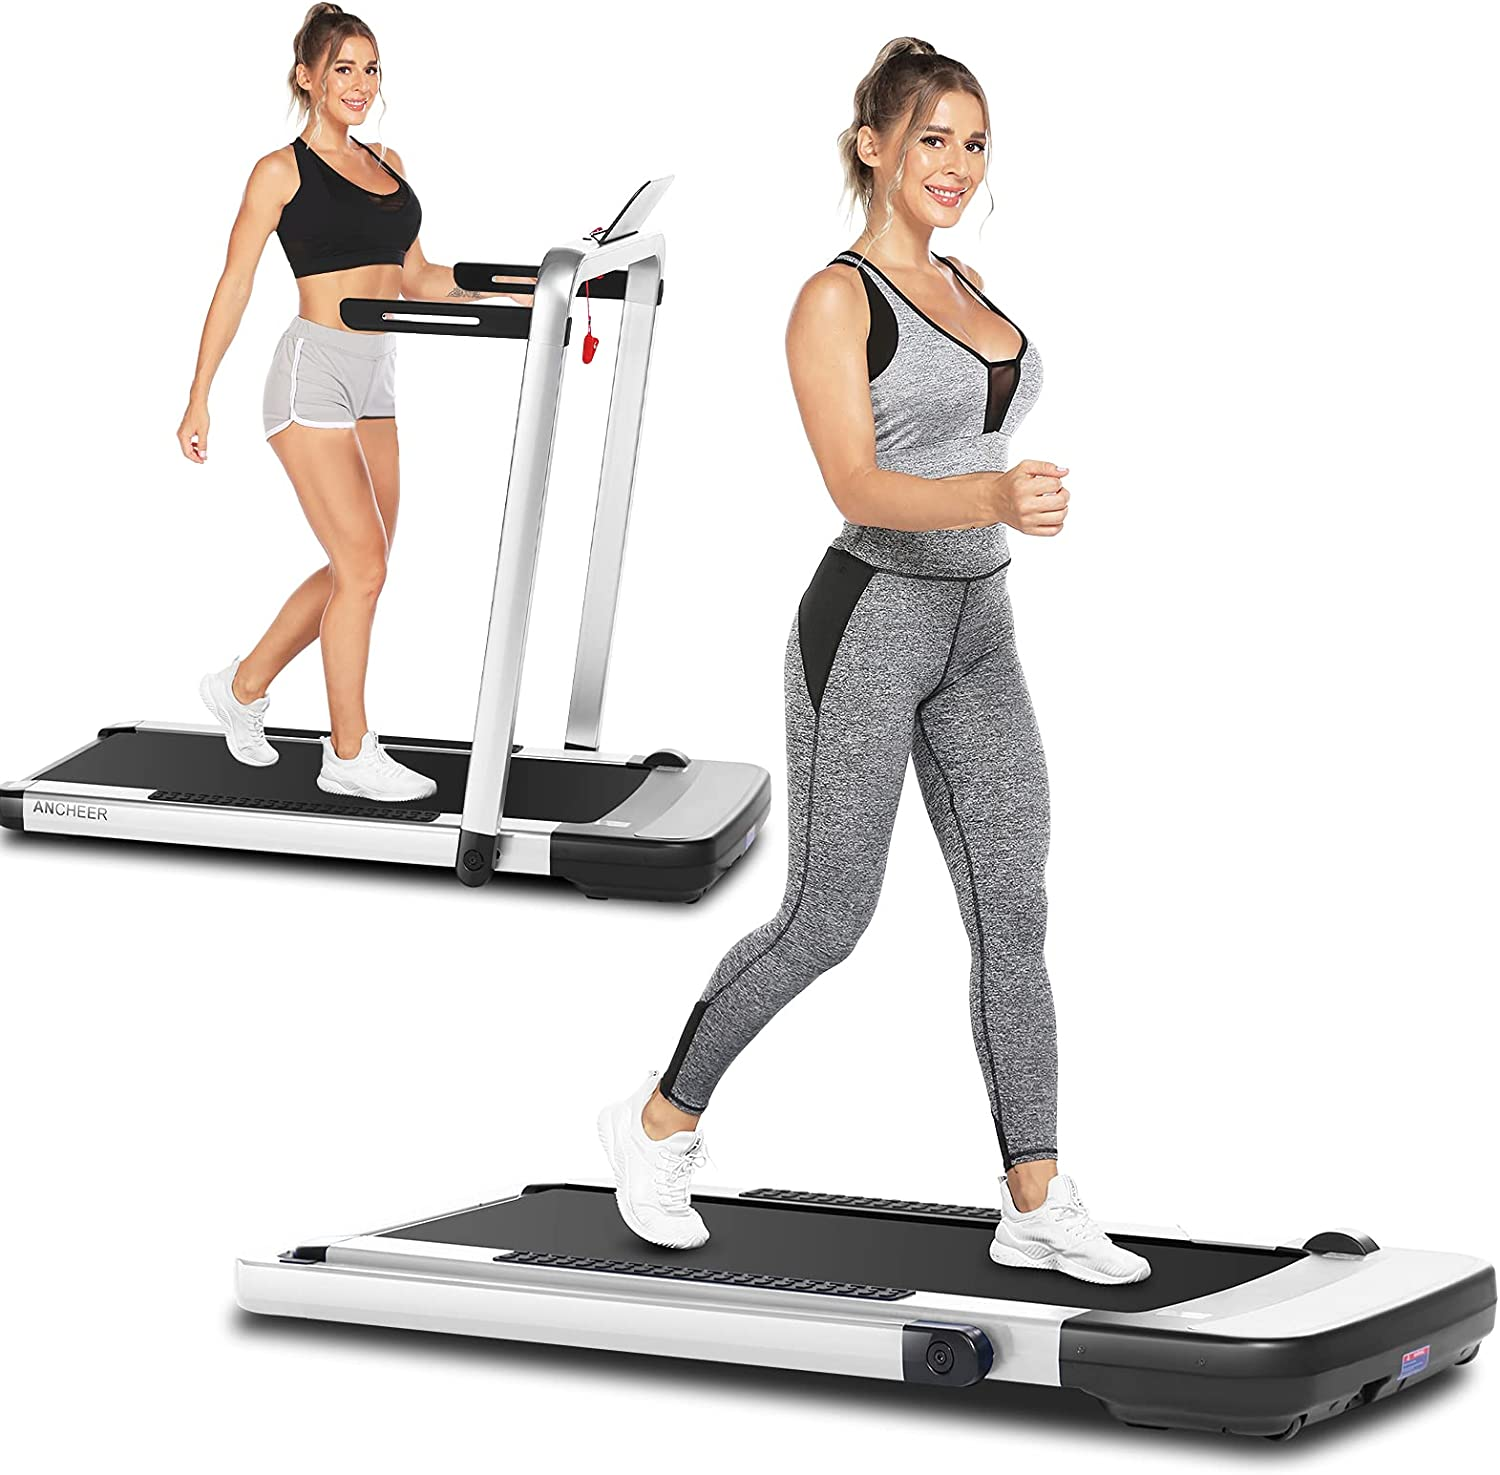 ANCHEER 25% OFF 2 in 1 Folding Under Desk Portable Super Special SALE held Treadmill